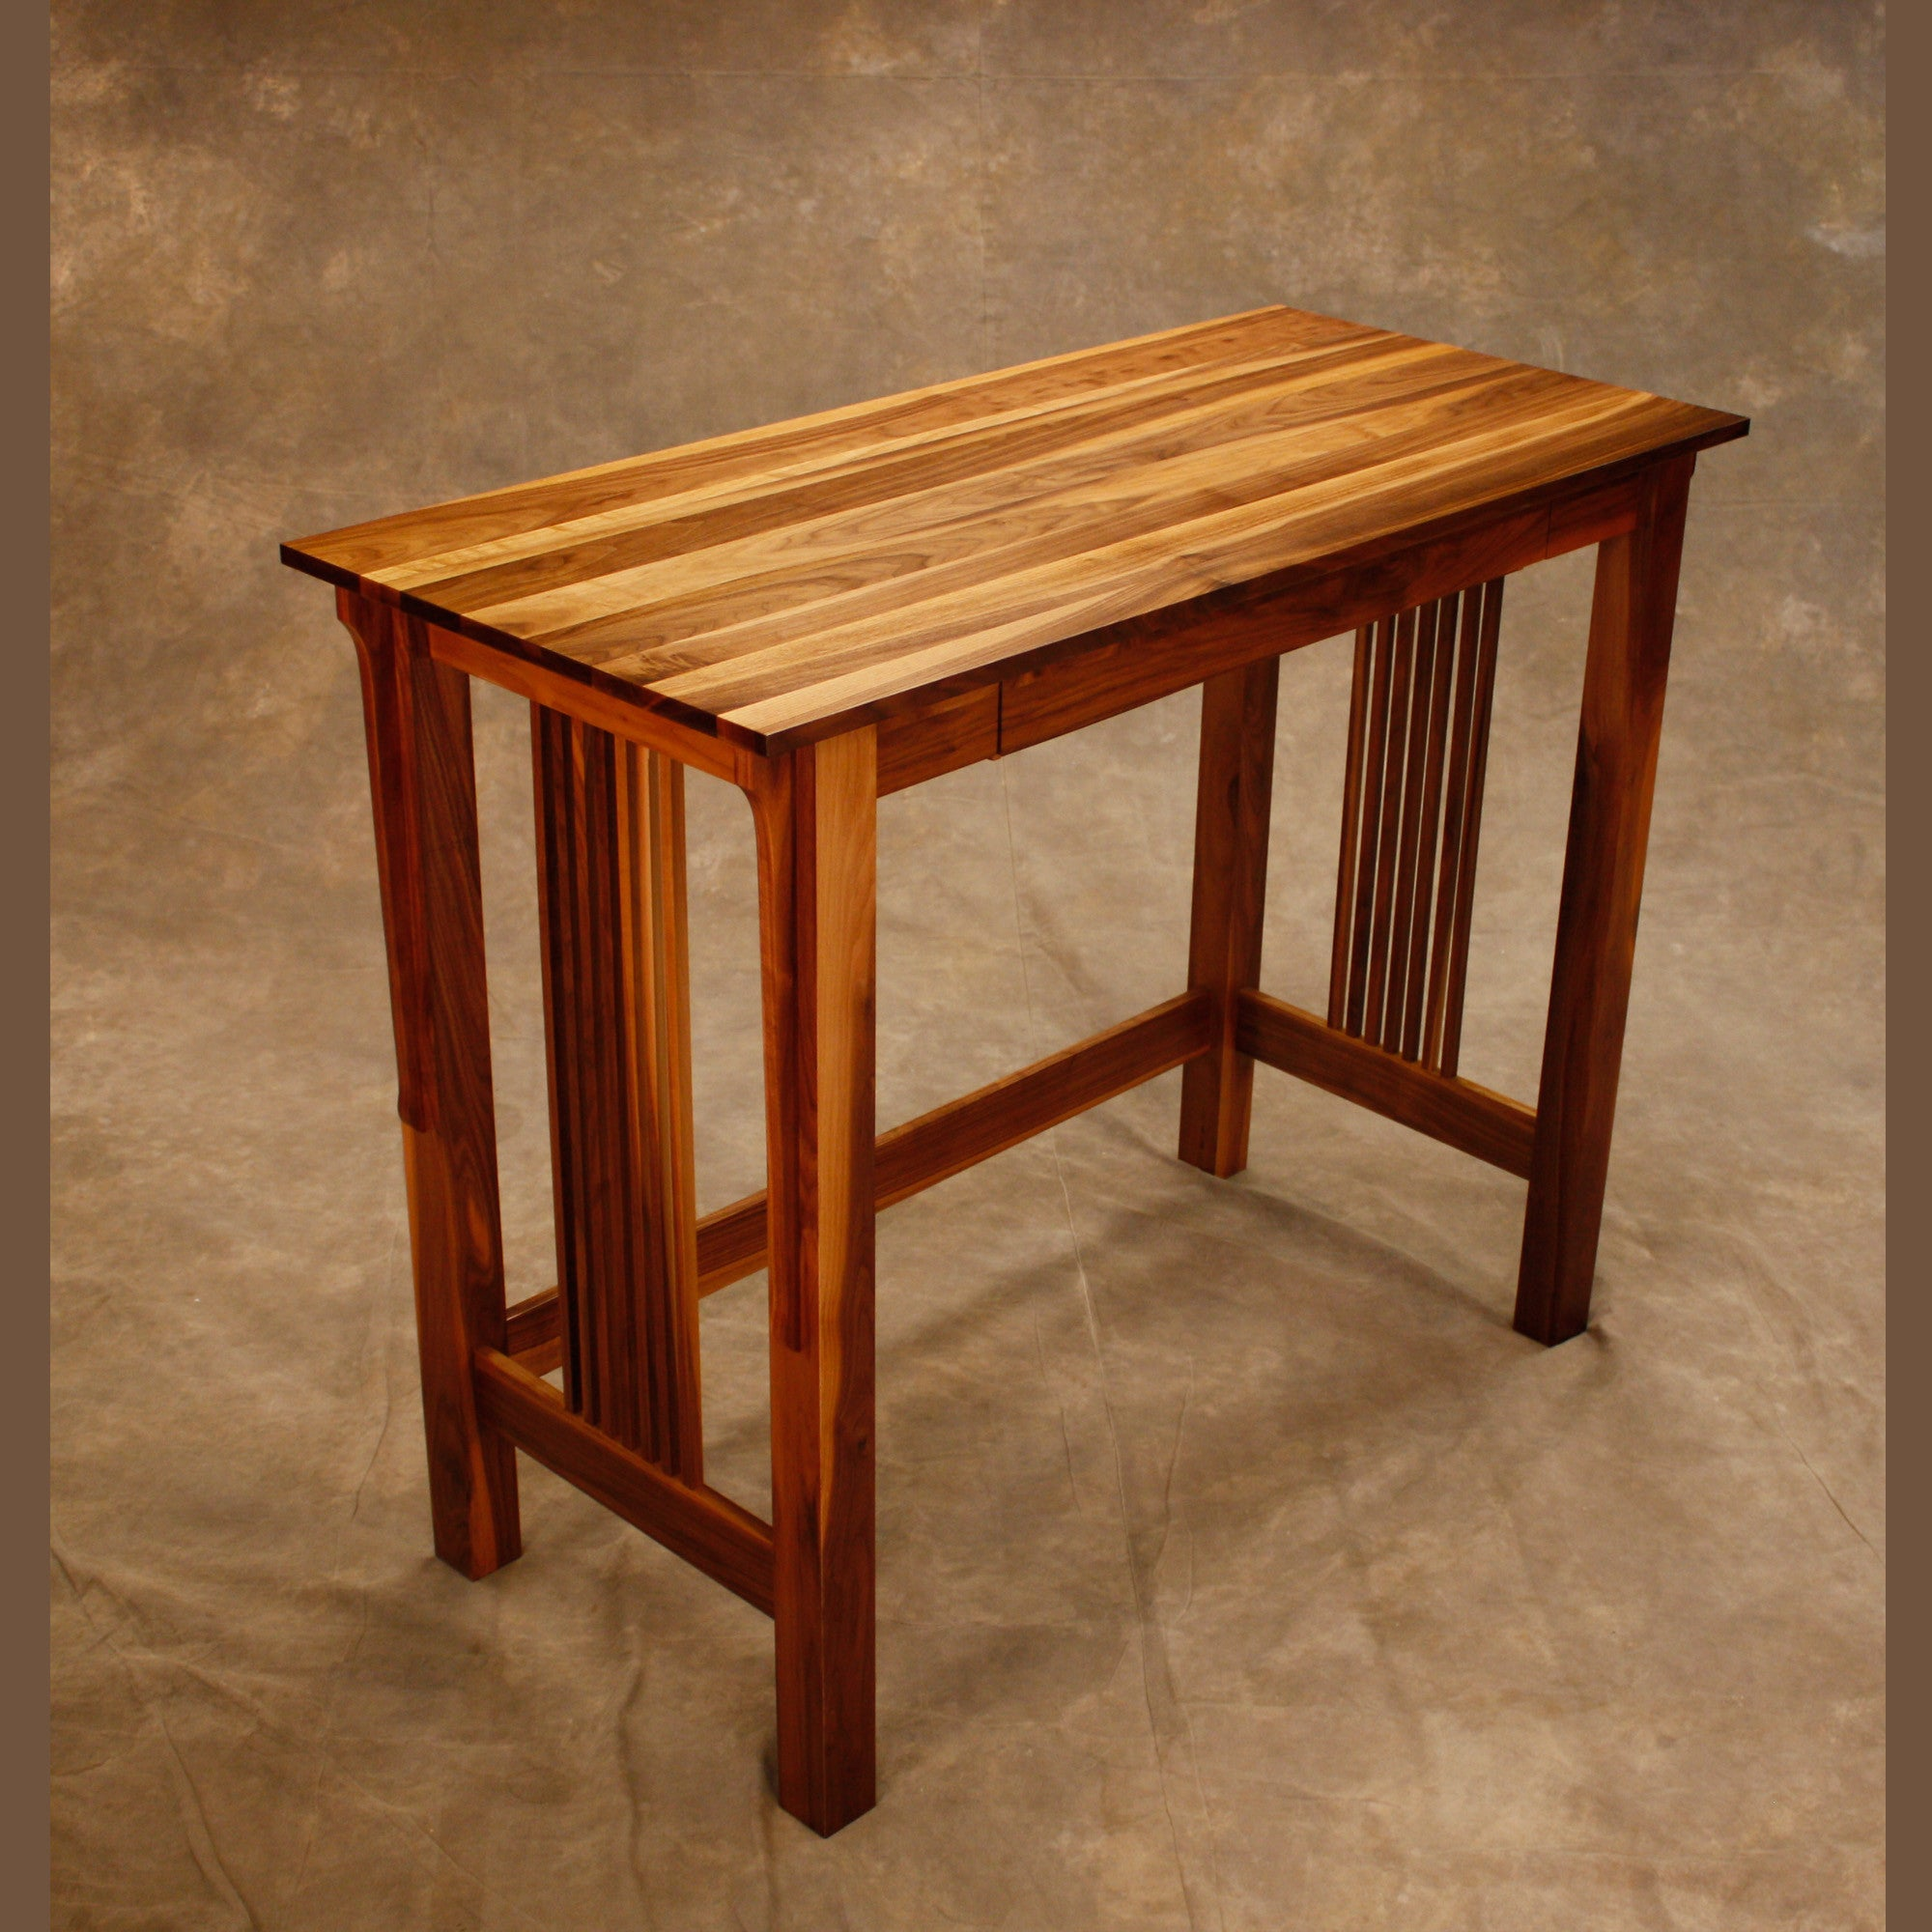 Wooden Stand Up Desk ~ Wood stand up desk hostgarcia